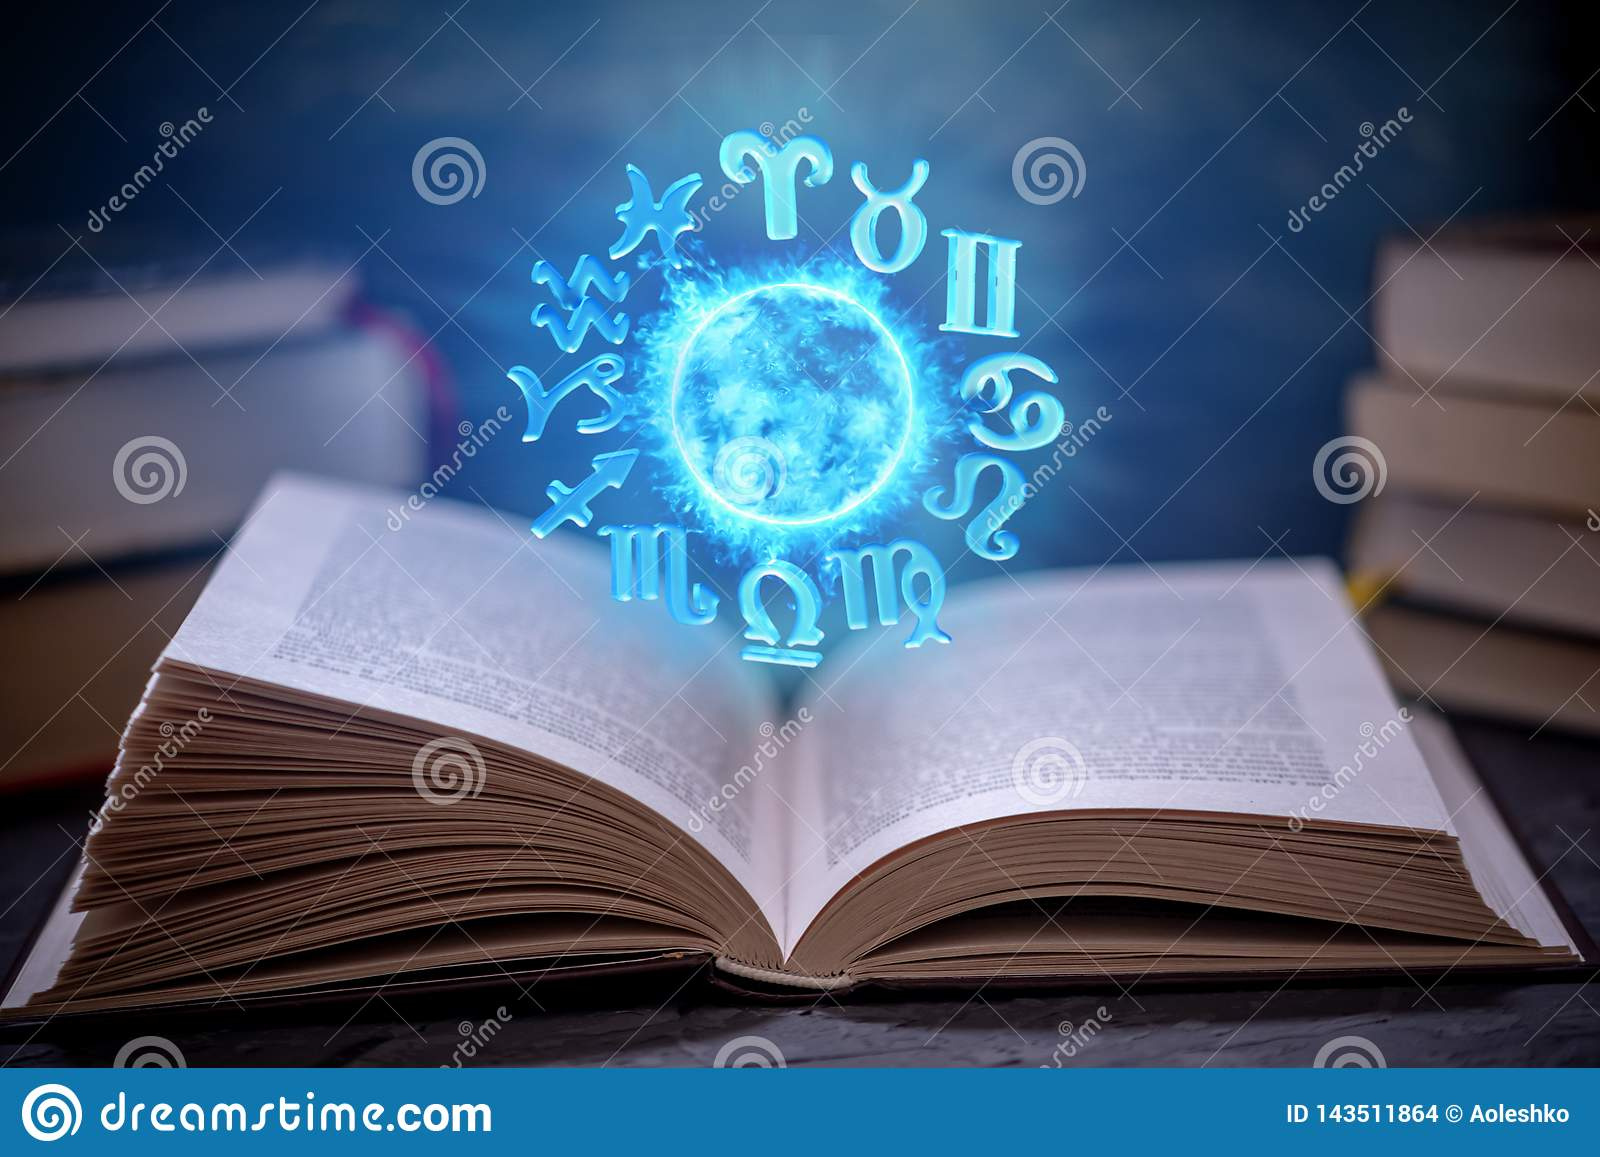 Open book on astrology on a dark background. The glowing magical globe with signs of the zodiac in the blue light